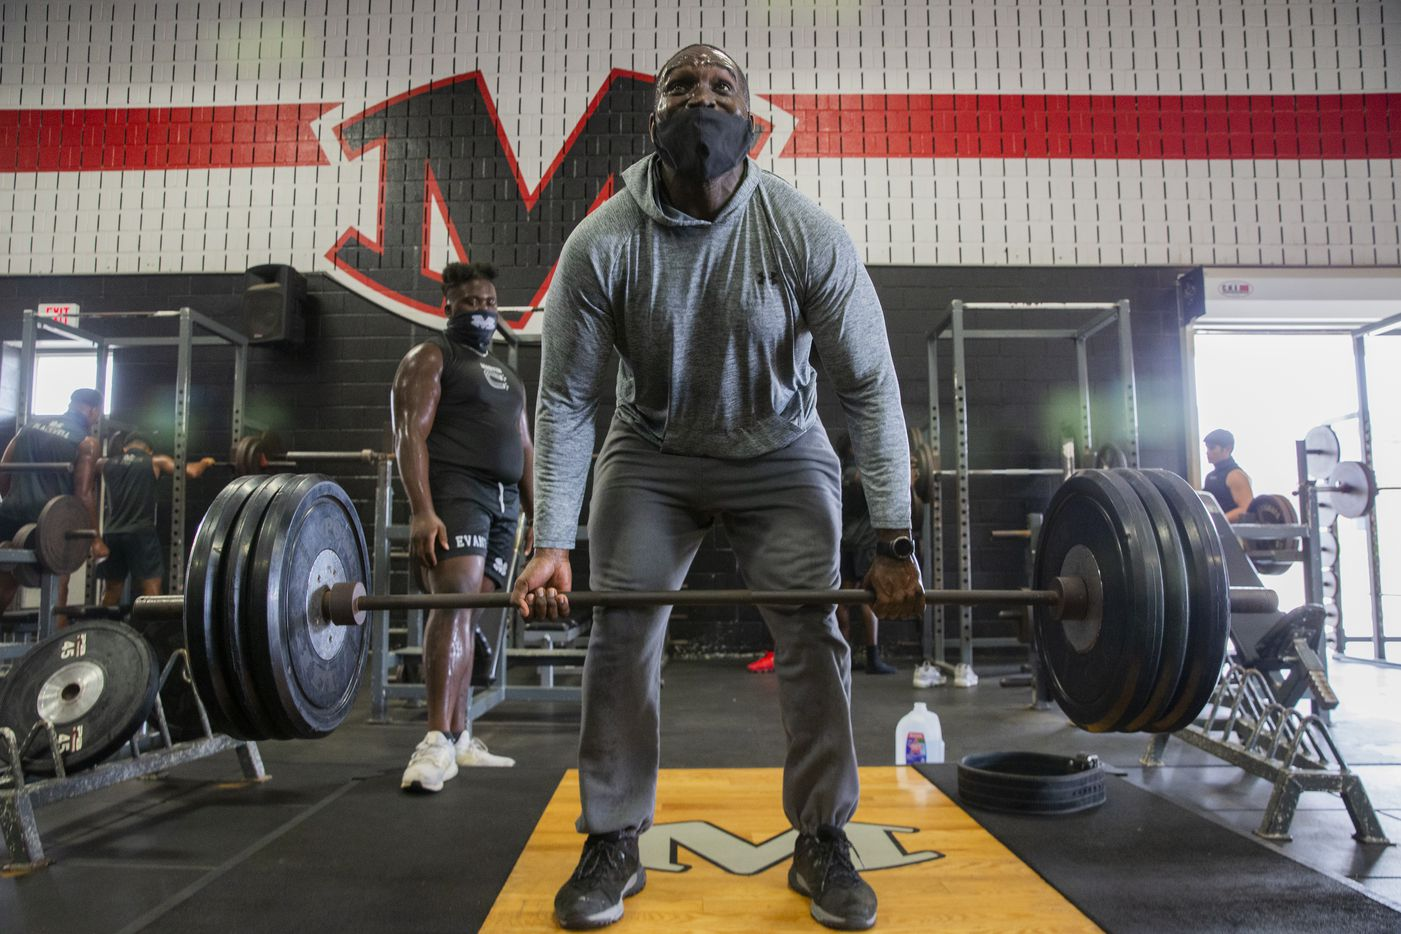 """Homicide Sergeant Brian Jones from the Arlington Police Department works out with Arlington Martin football players at their gym as part of the """"Coach 5-0"""" program on Monday, Sept. 21, 2020 in Arlington. (Juan Figueroa/ The Dallas Morning News)"""